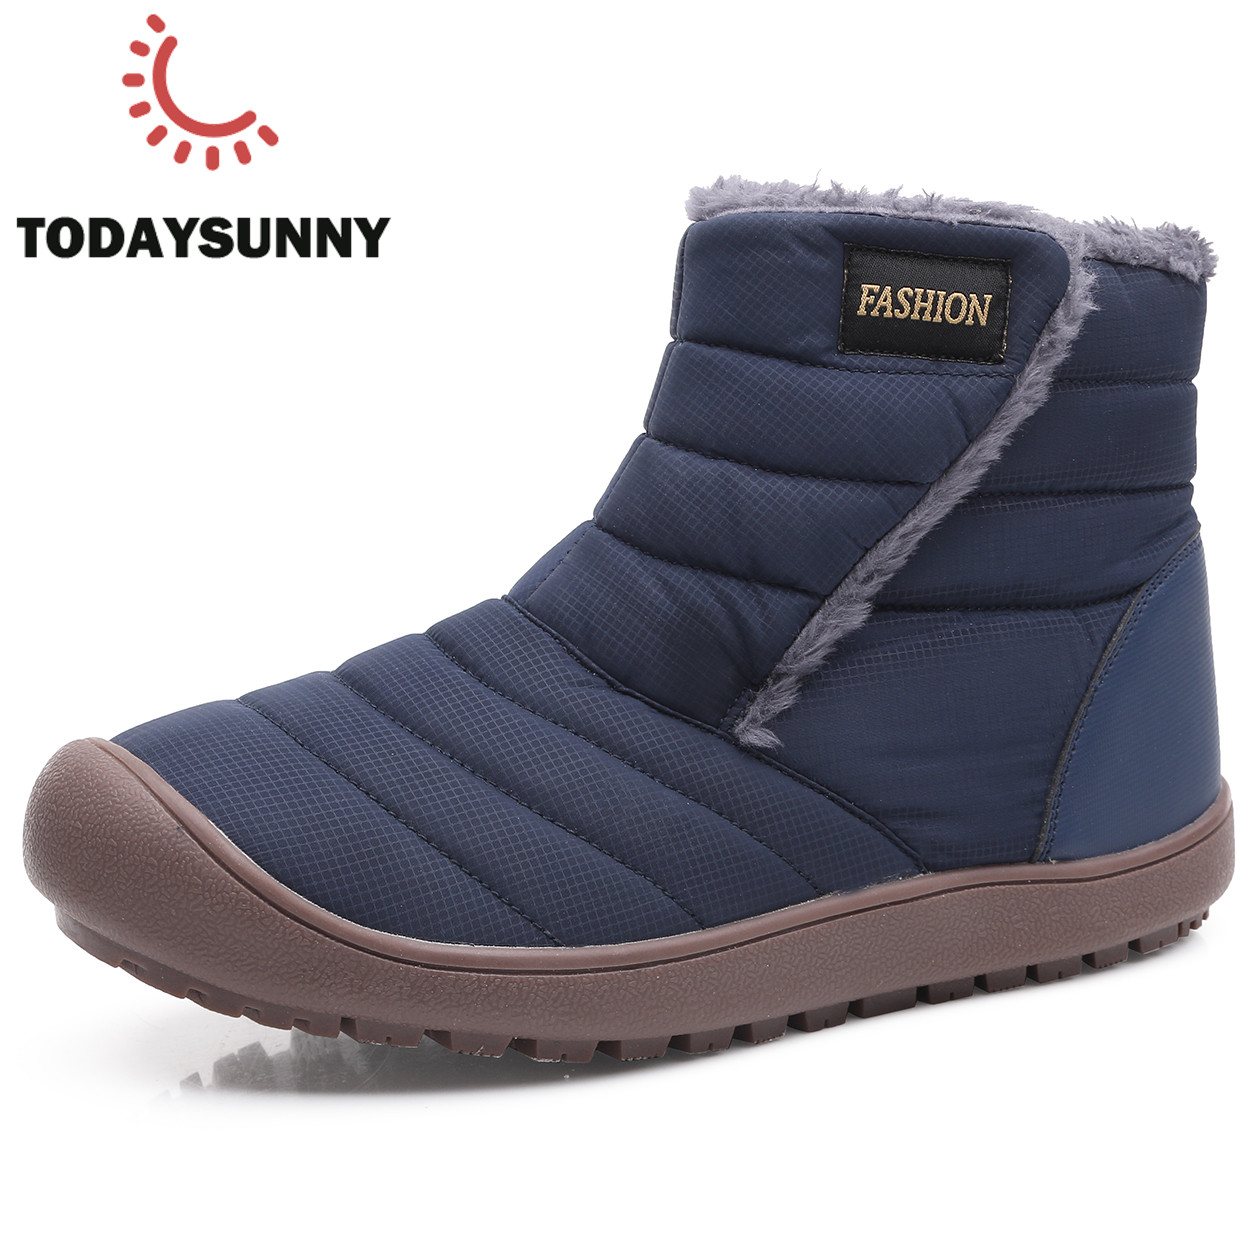 Mens 2019 Fashion Winter Warm Fur Liend we Loafers Waterproof Snow Boots Shoes